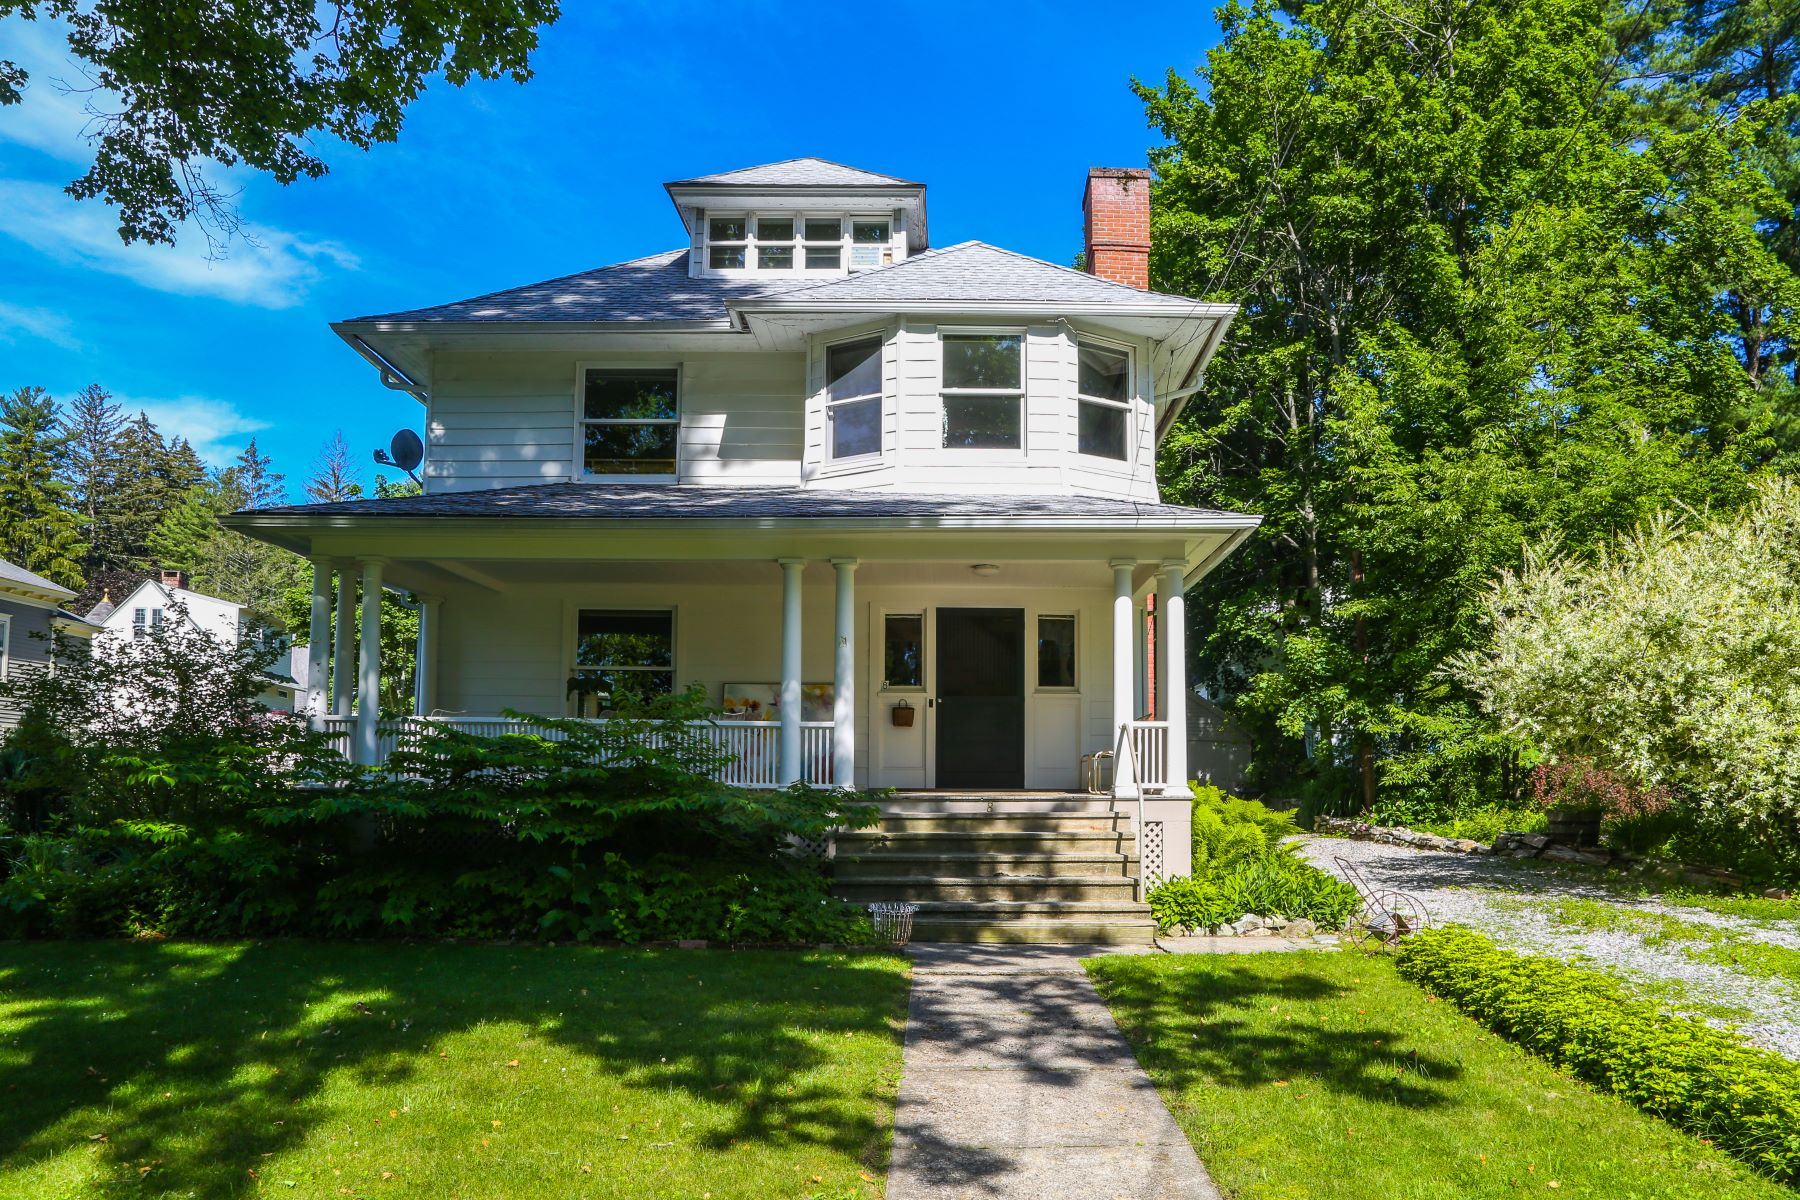 단독 가정 주택 용 매매 에 Beautifully Maintained American Foursquare on The Hill 8 Oak St Great Barrington, 매사추세츠, 01230 미국